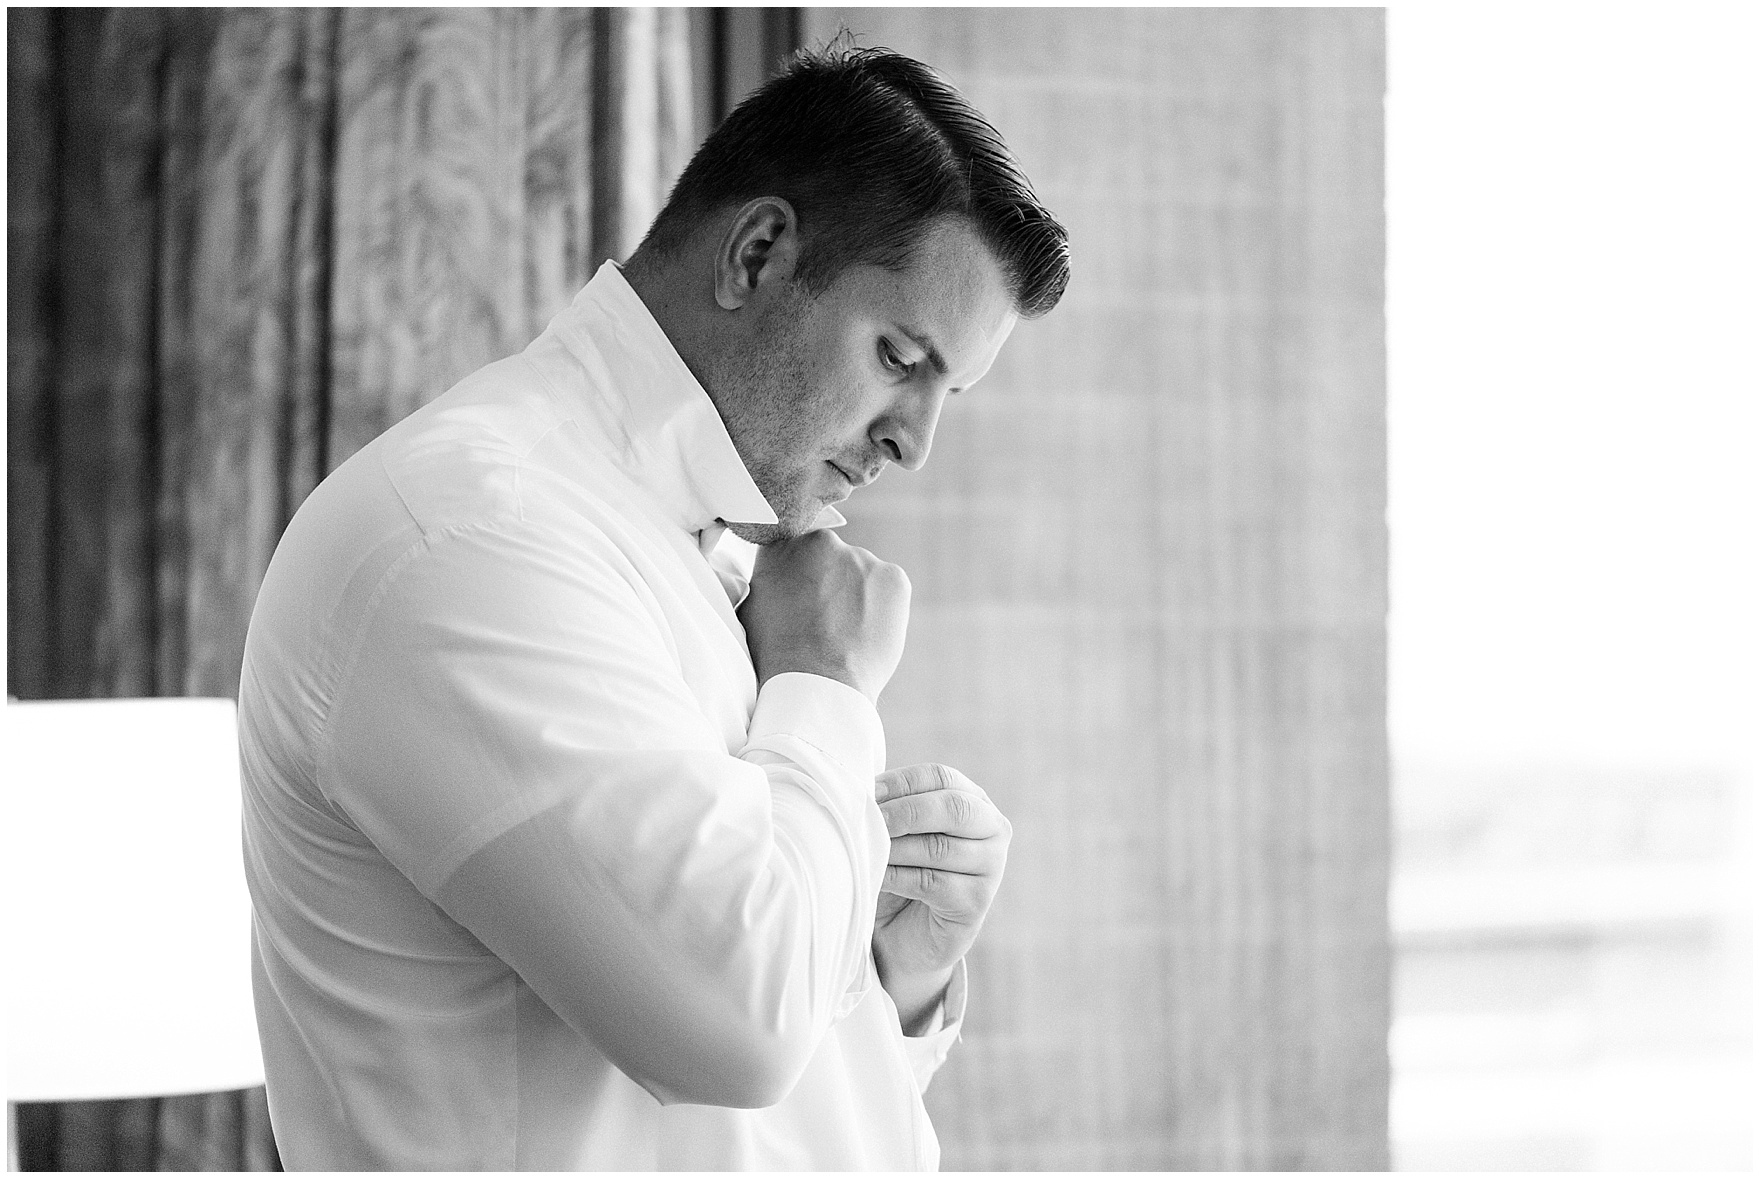 The groom fastens his cuffs while getting ready at the Westin Itasca for an Itasca Country Club Illinois wedding.